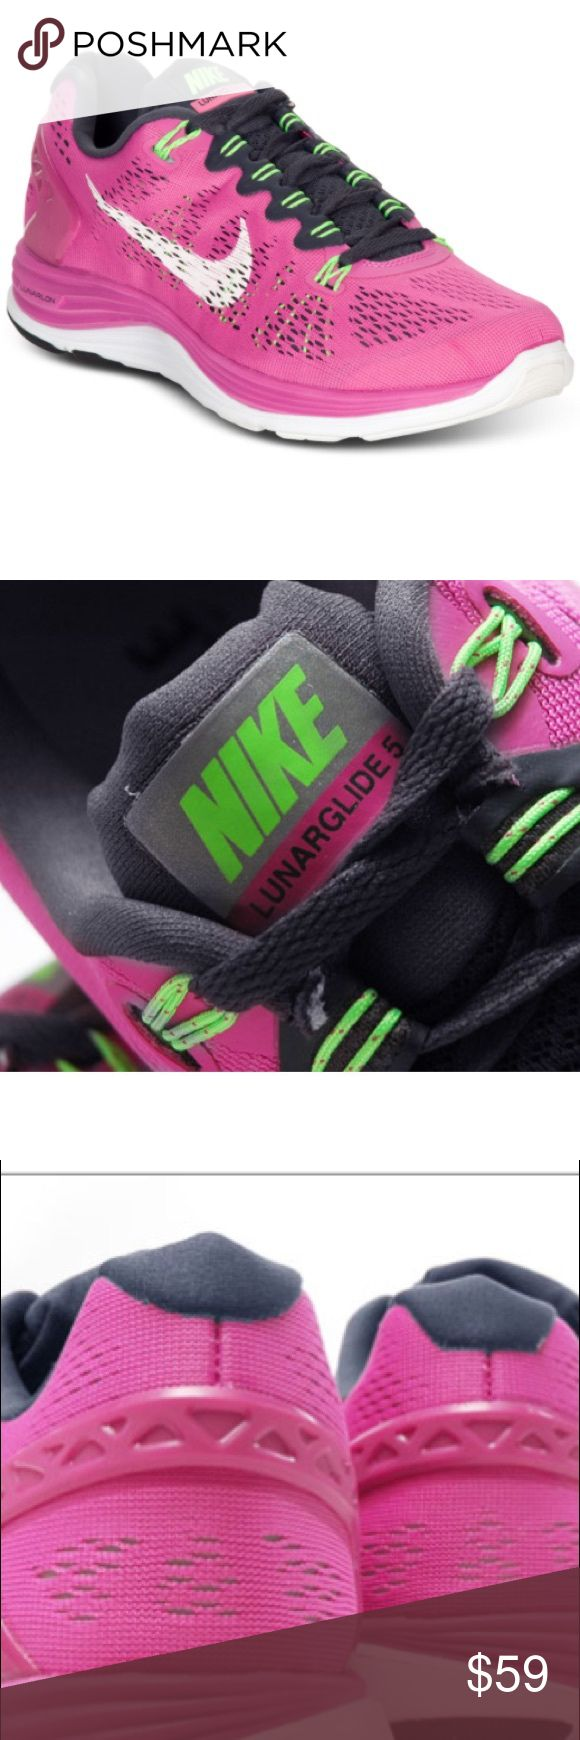 Nike Lunarglide 5 Purple/Pink/Lime Great pair of Lunarglide 5 running sneakers from Nike in excellent condition. Purple/pink color with lime green accent & gray laces. Please see pictures for normal wear but in excellent condition. Nike Shoes Sneakers